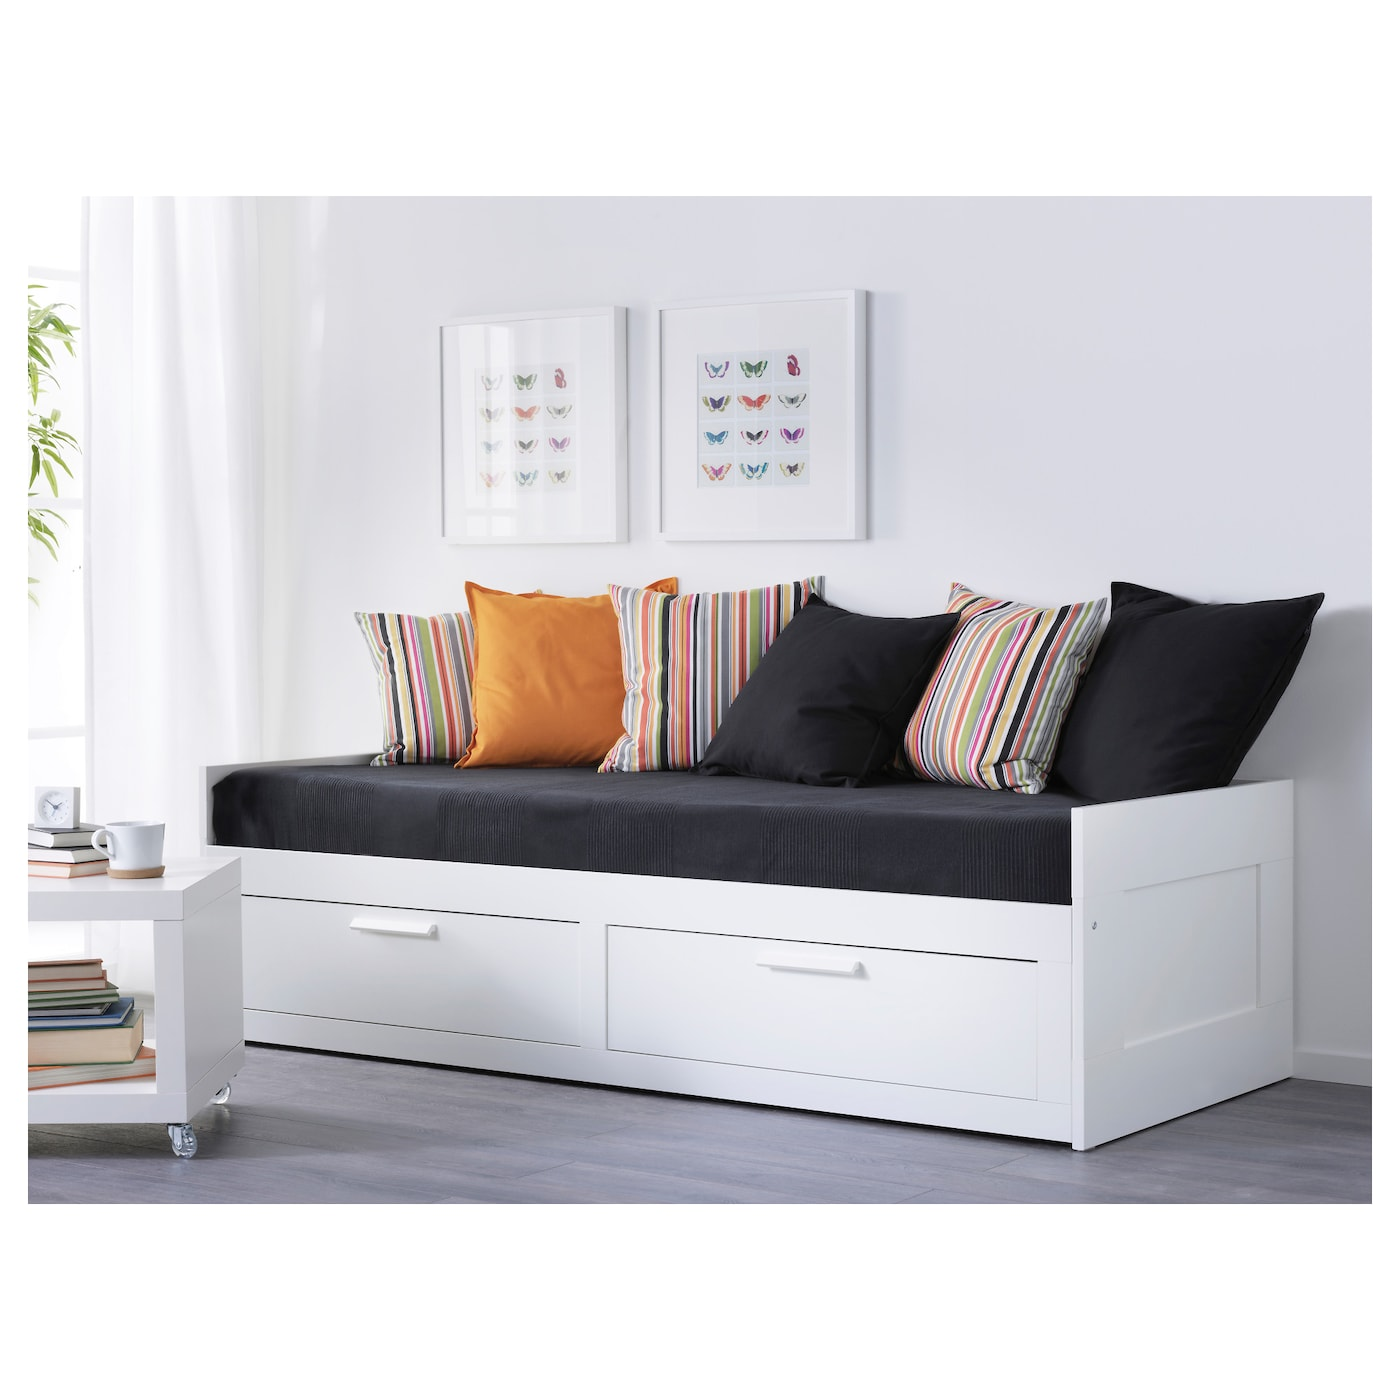 IKEA BRIMNES Day Bed W 2 Drawers/2 Mattresses